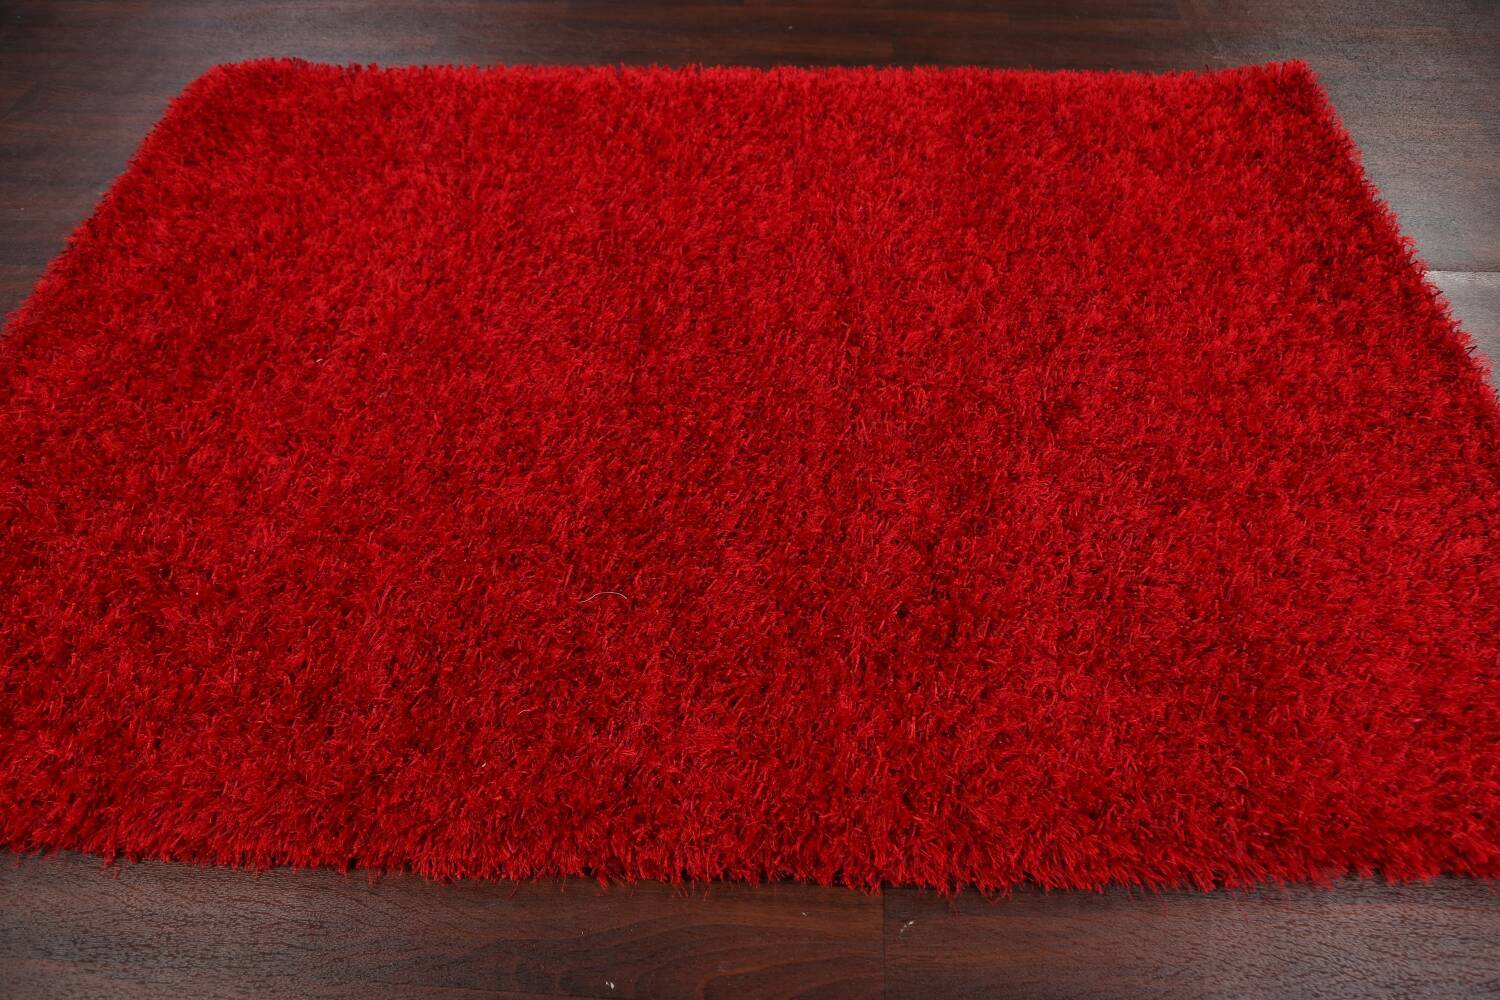 Red Plush Shaggy Area Rug 5x7 image 11